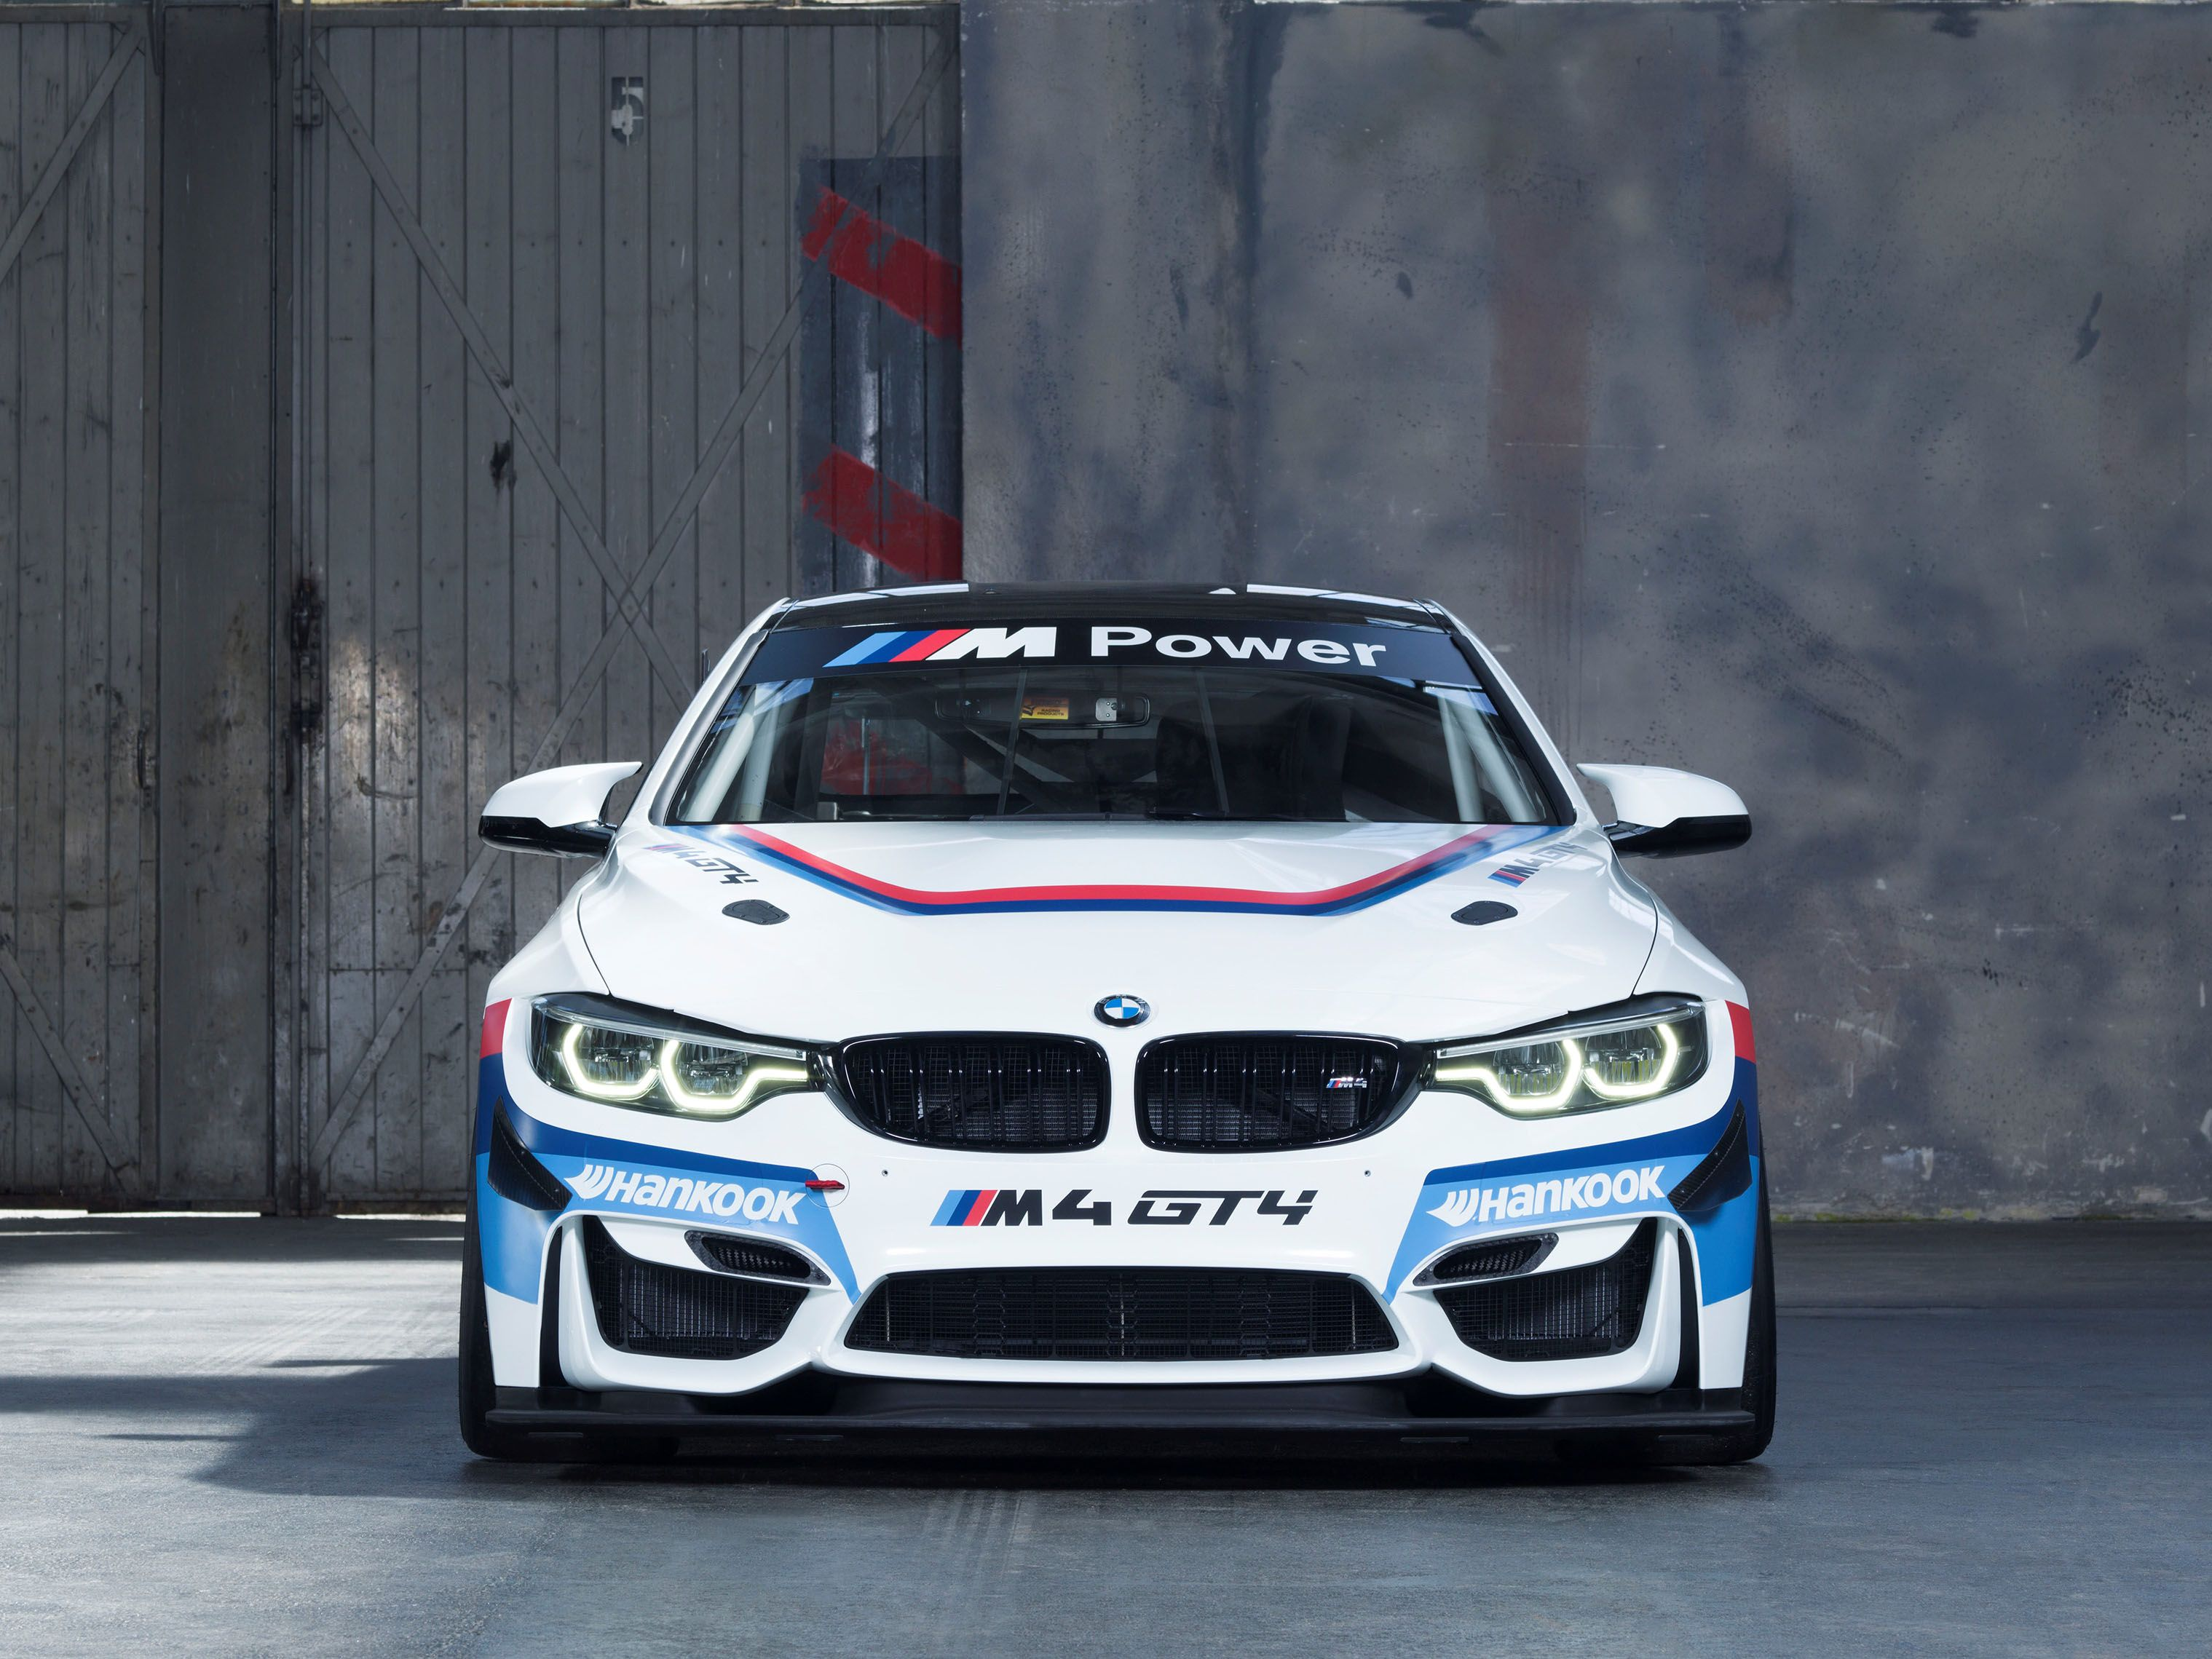 Bmw M4 Gt4 Race Car Now Available For Order Bmw M4 Bmw Super Cars